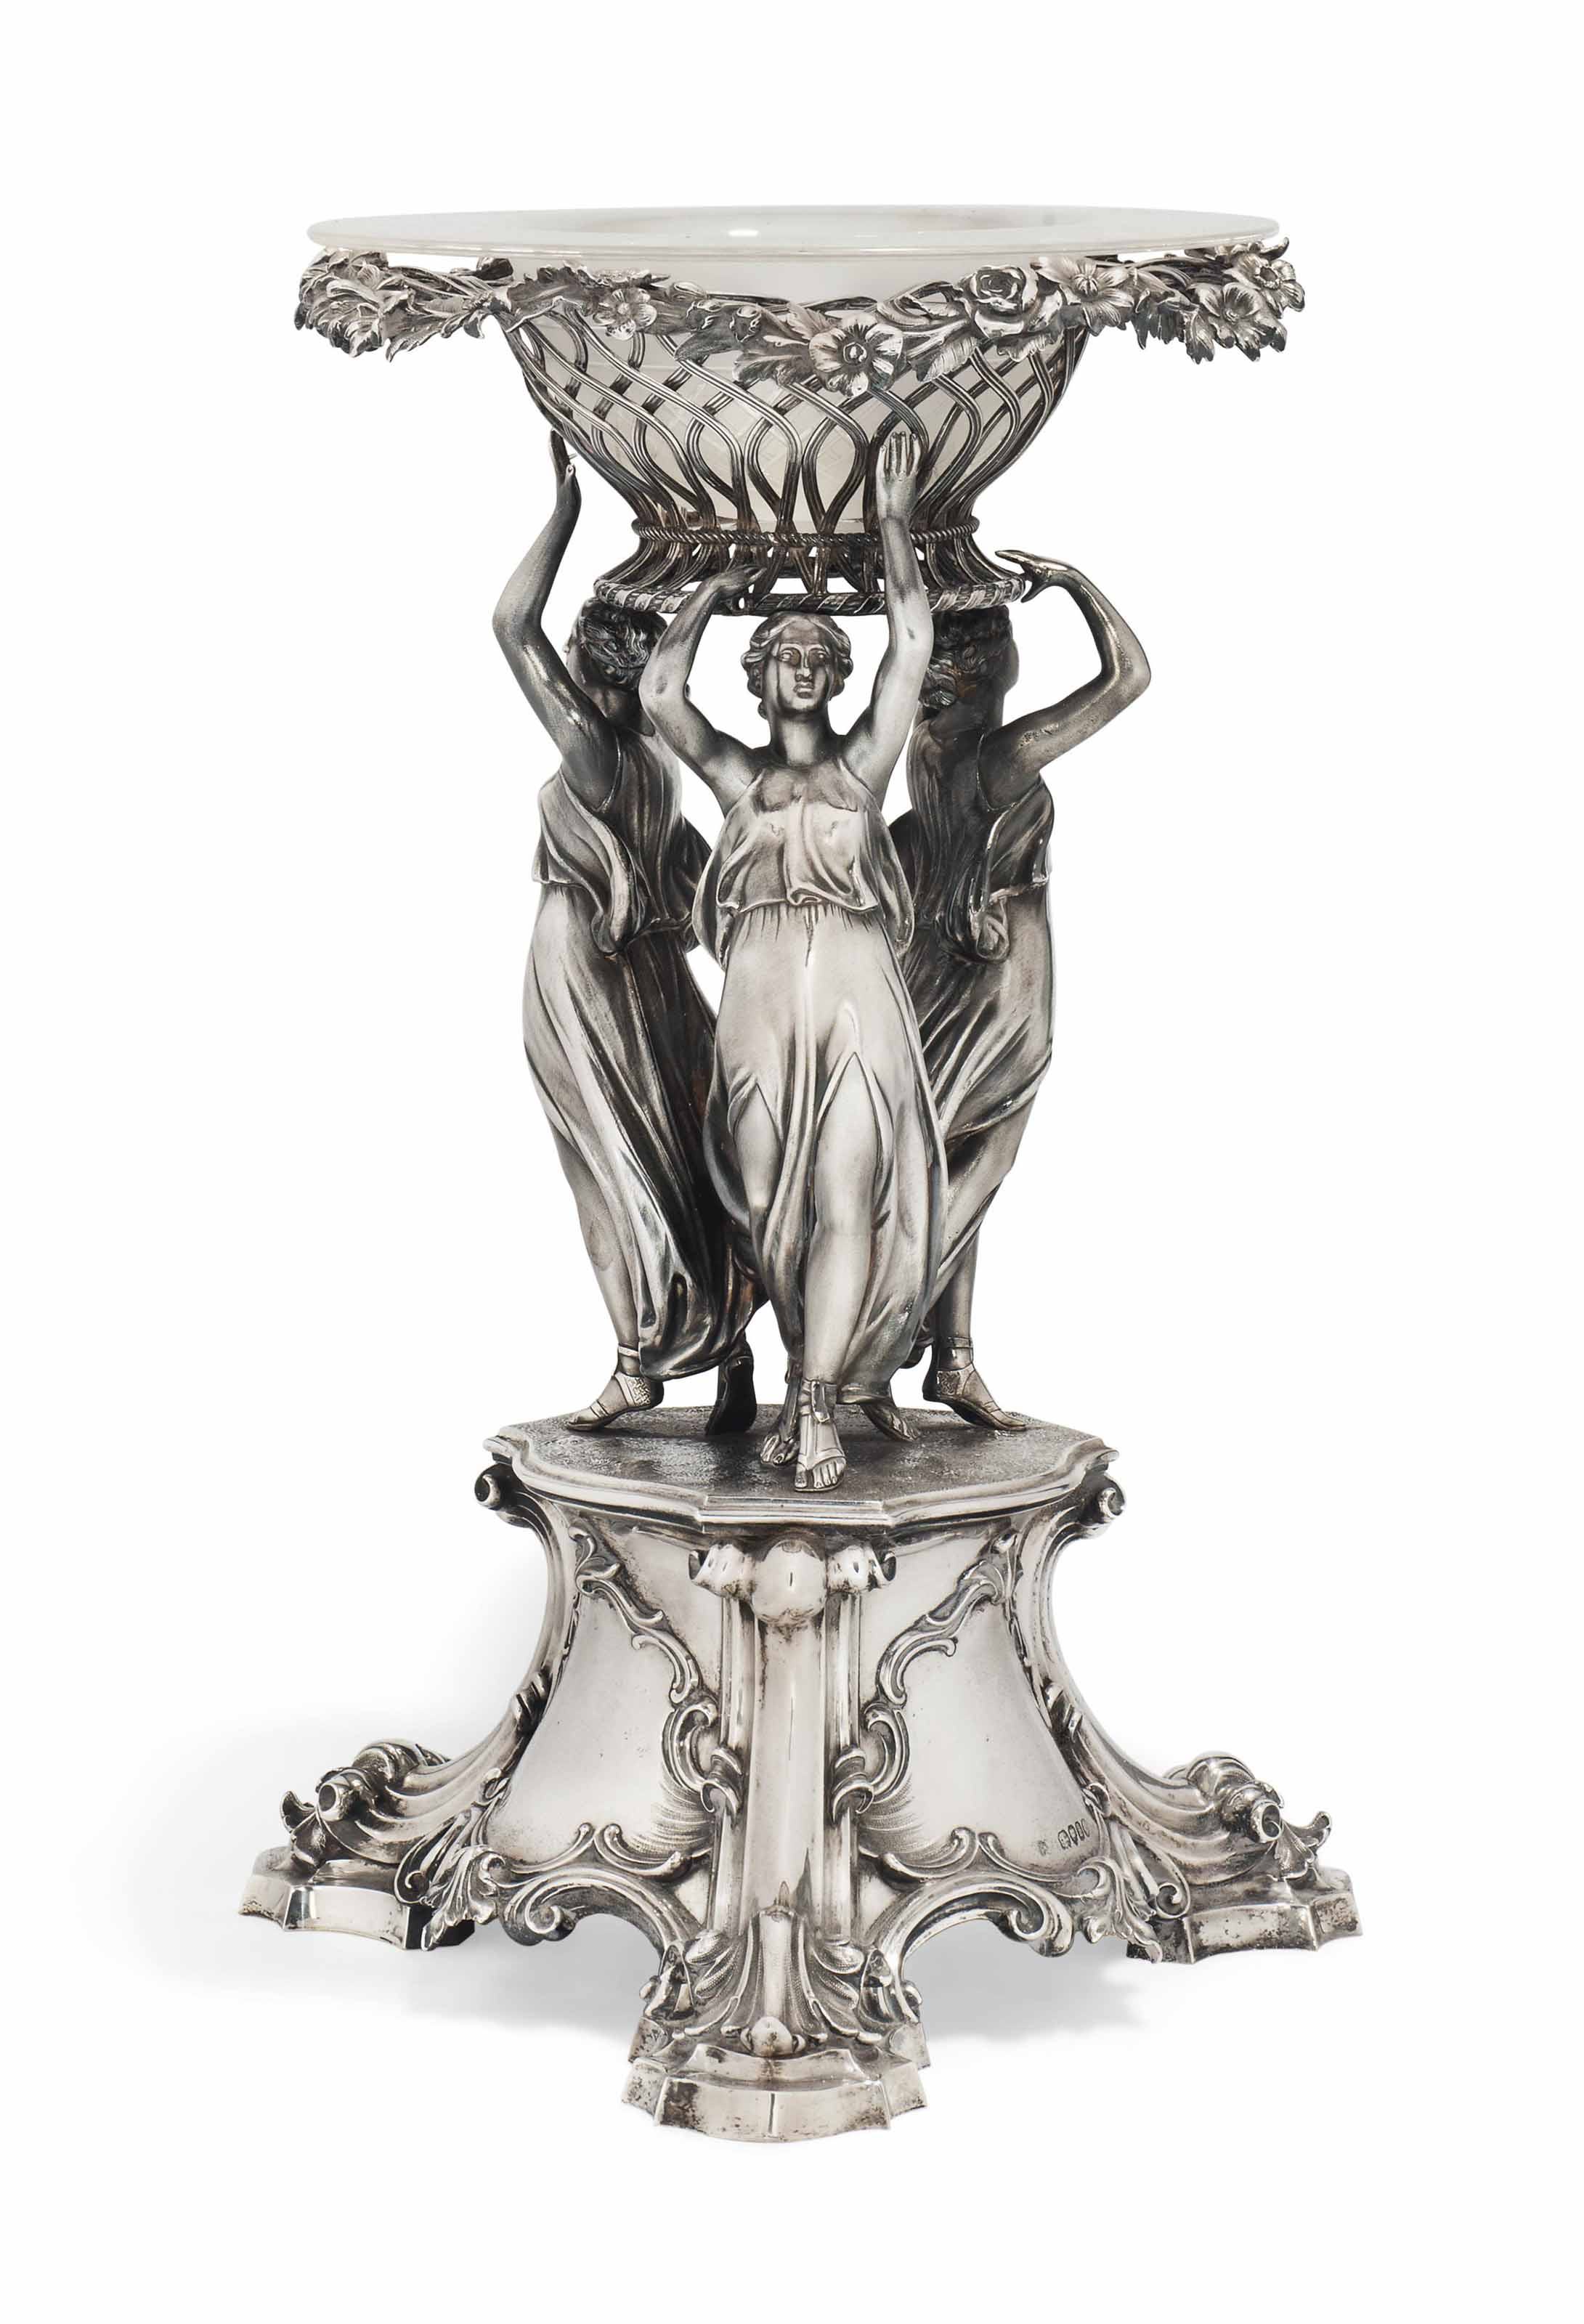 A VICTORIAN SILVER CENTREPIECE COMPORT STAND